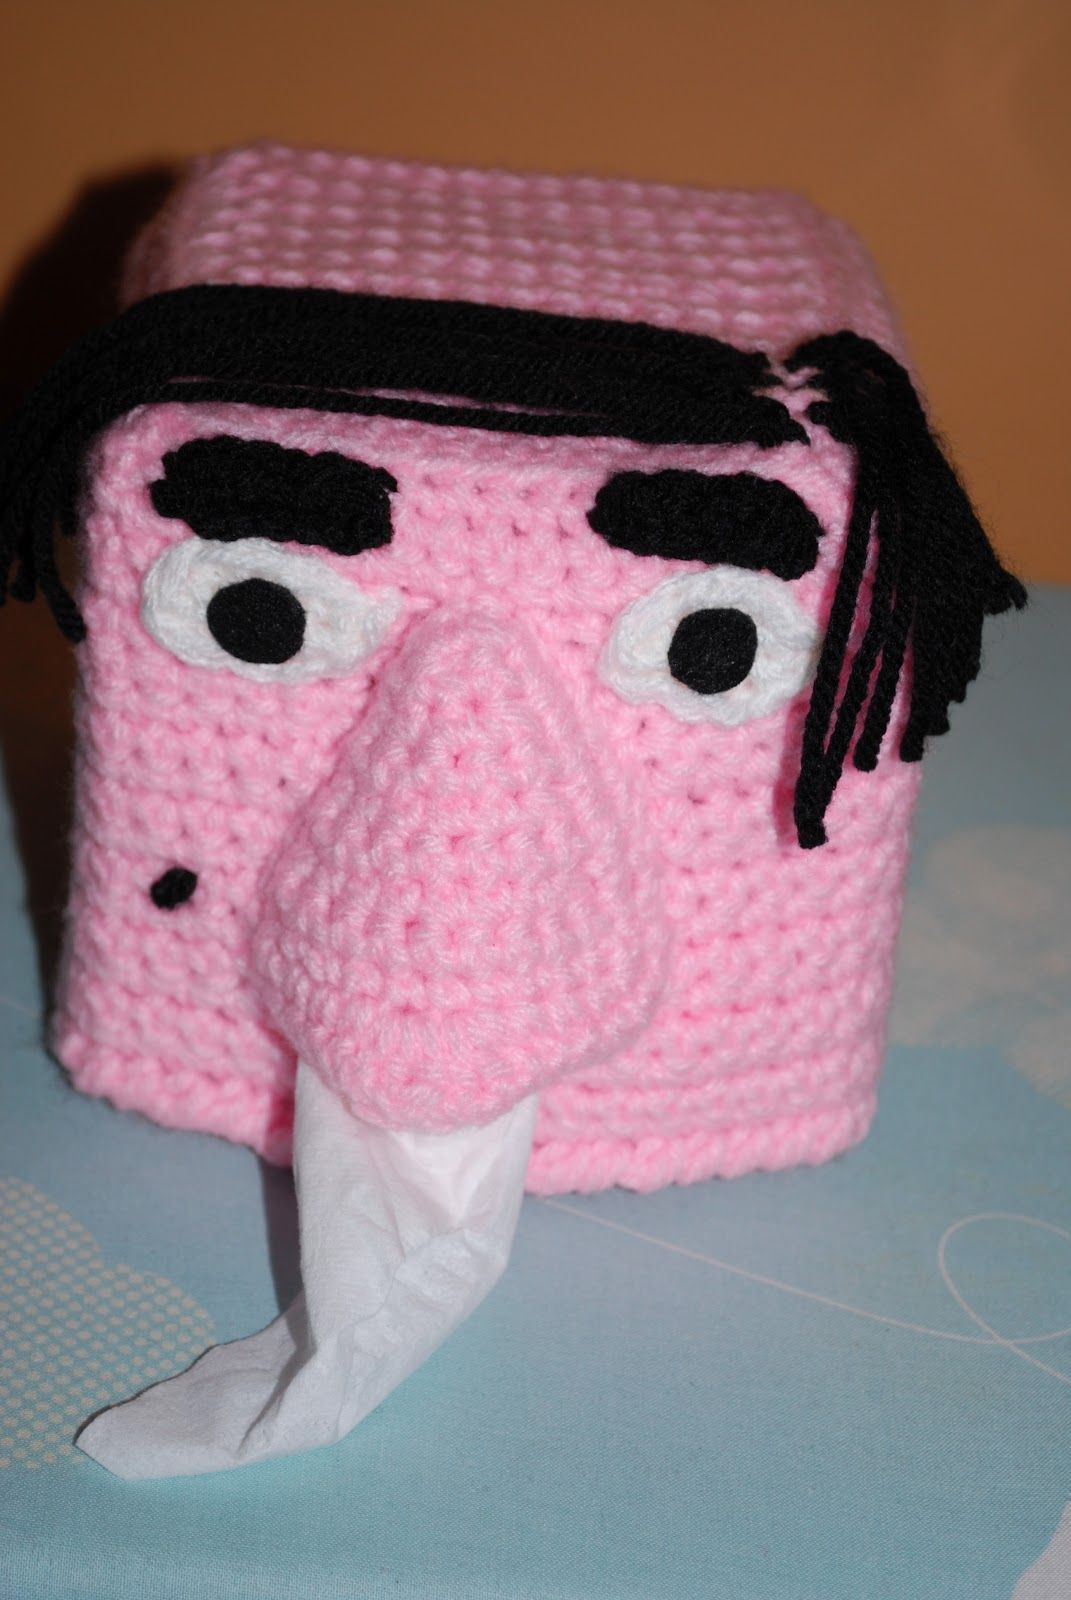 Crochet Tissue Box Face Free Patternyou Either Find This Funny Or